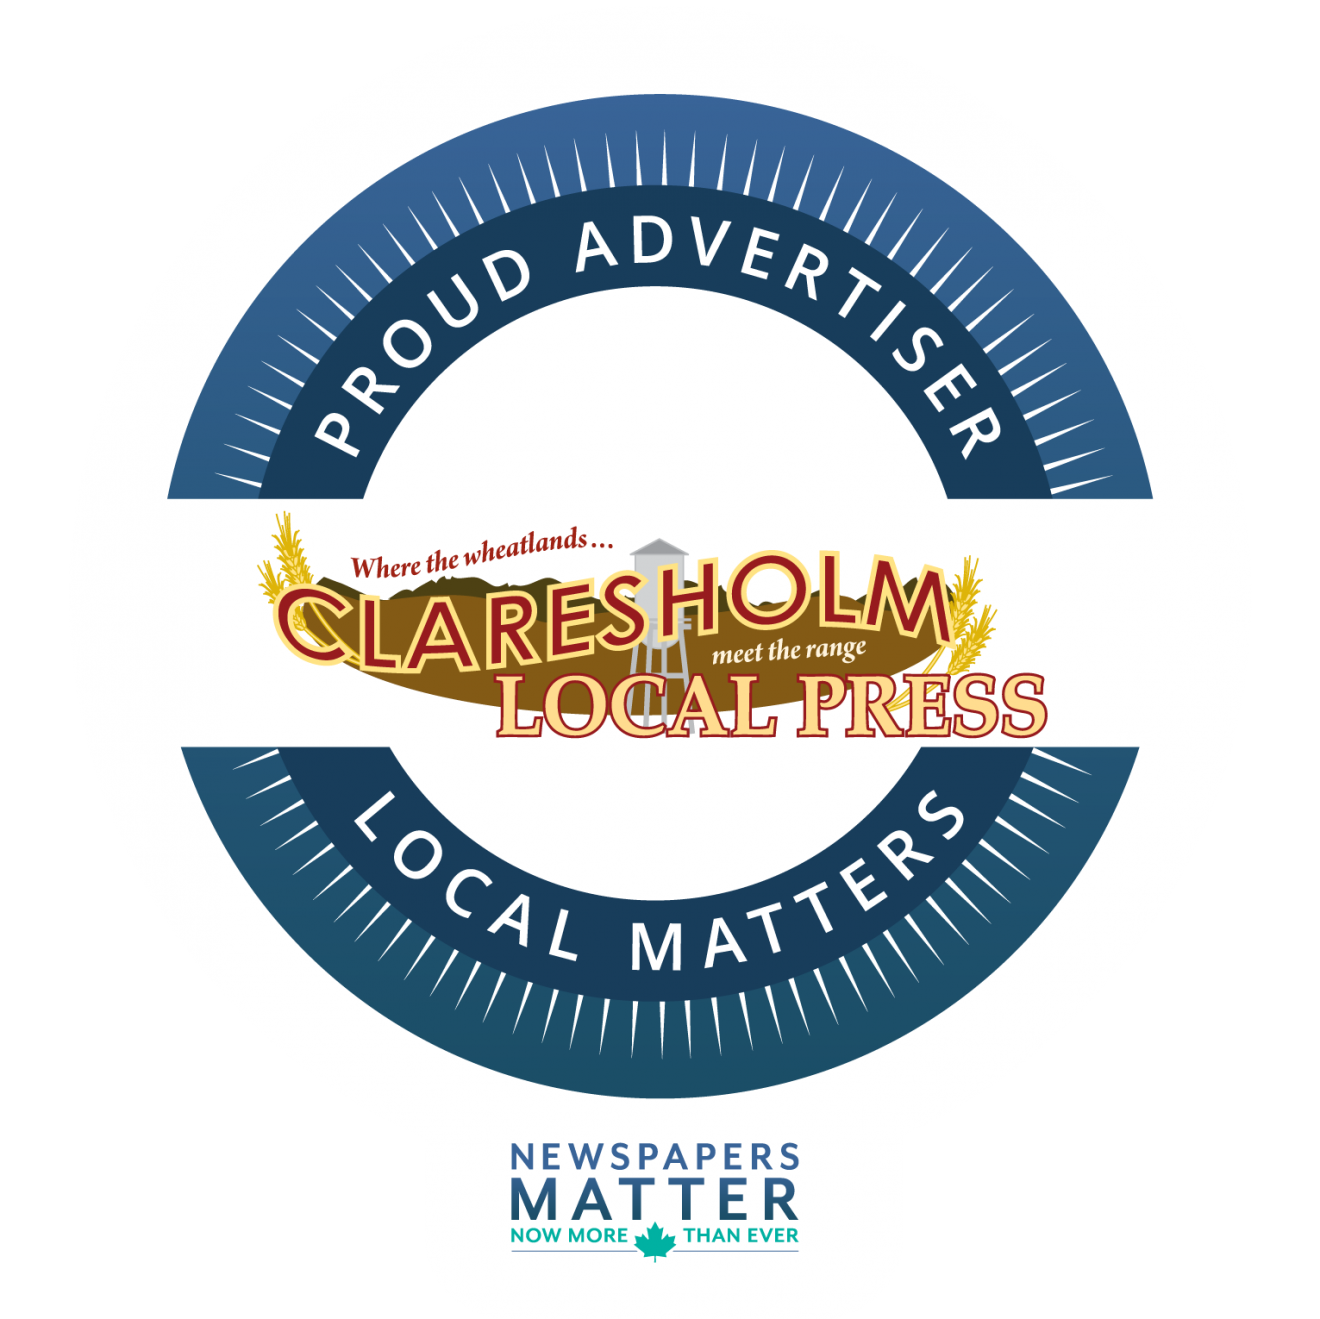 Proud Advertisers support local markets across the country